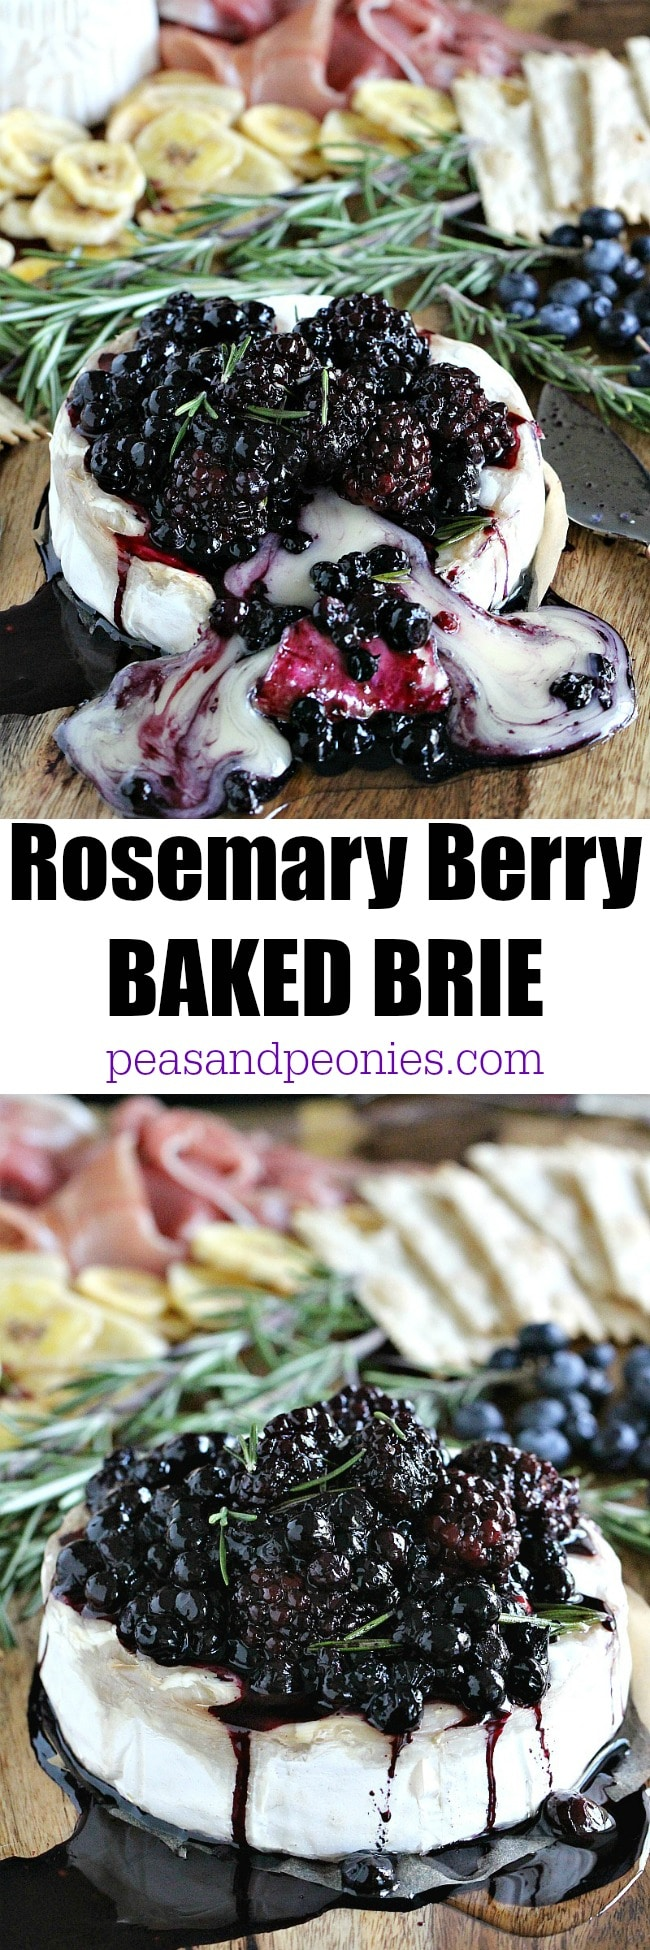 Rosemary Berry Baked Brie with roasted blueberries and blackberries.